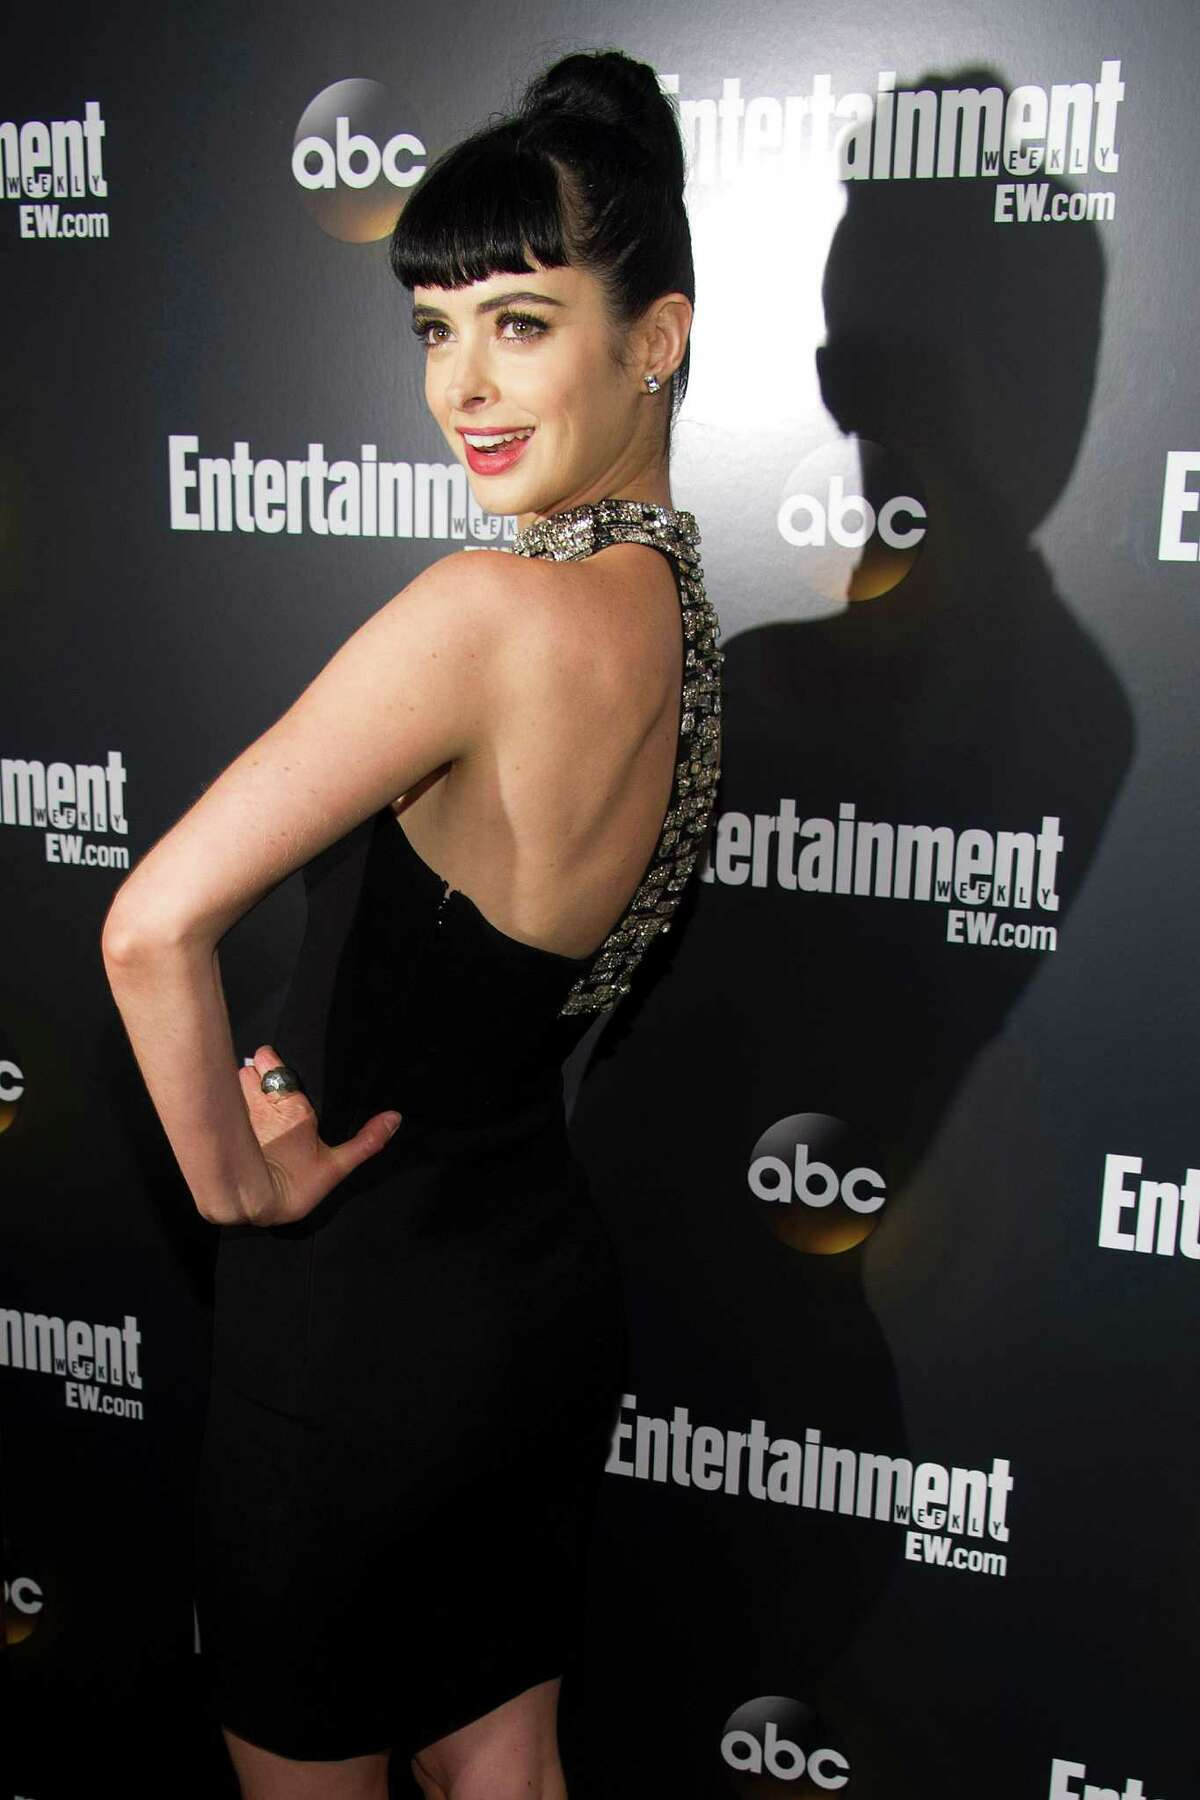 Krysten Ritter attends the Entertainment Weekly and ABC Upfronts Party in New York, Tuesday, May 15, 2012.